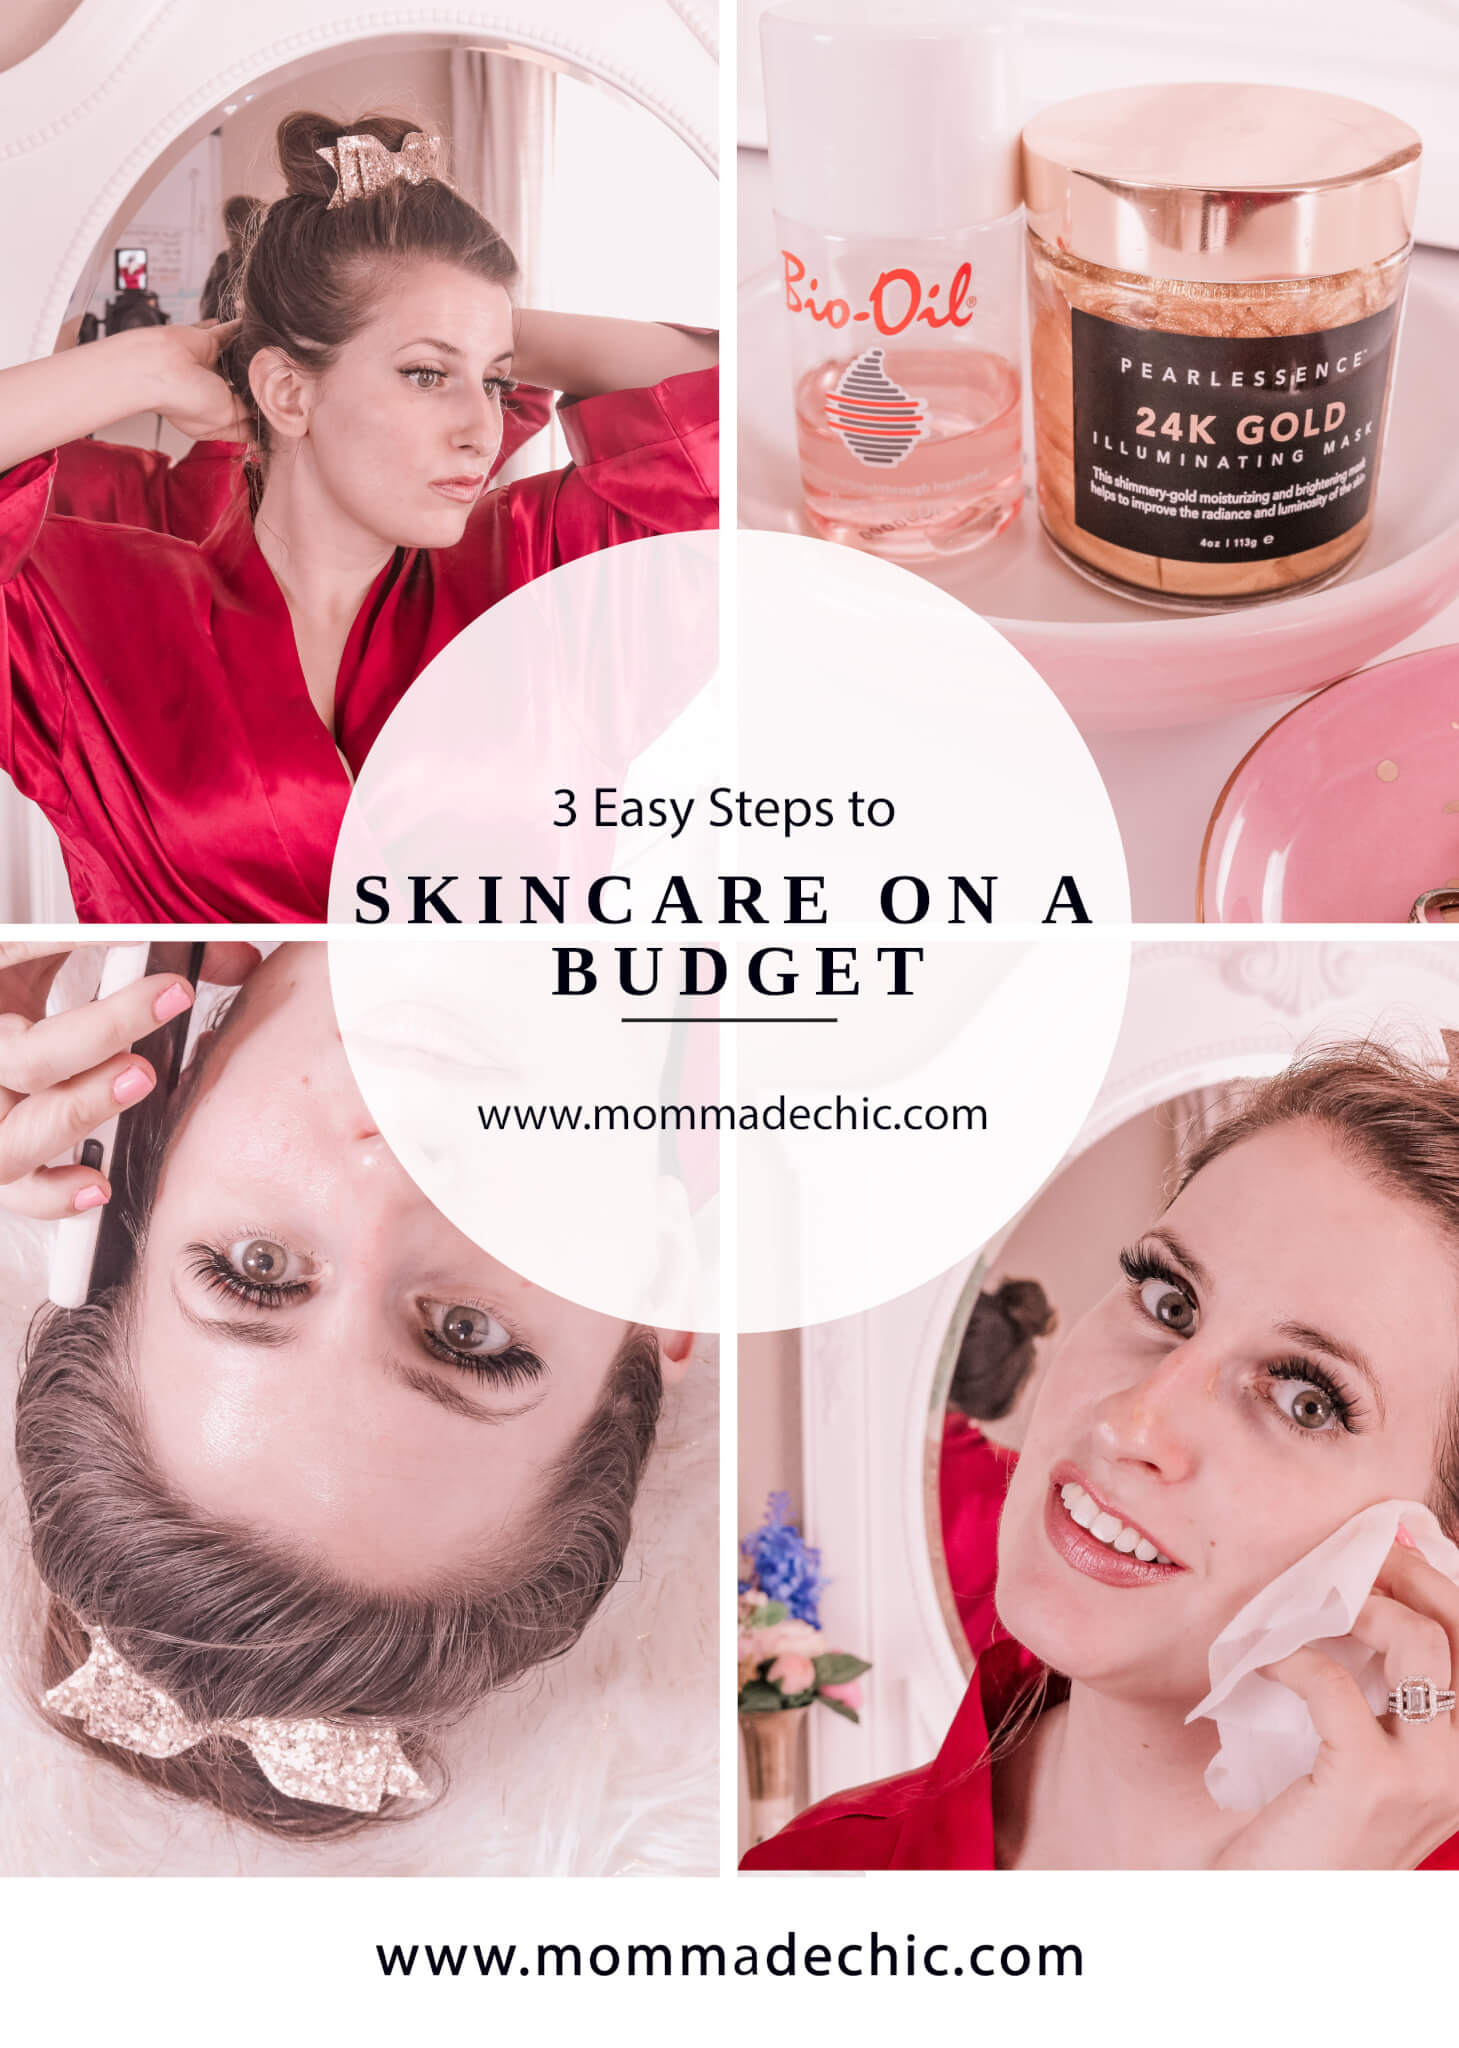 3 Easy Steps to Skincare on a Budget